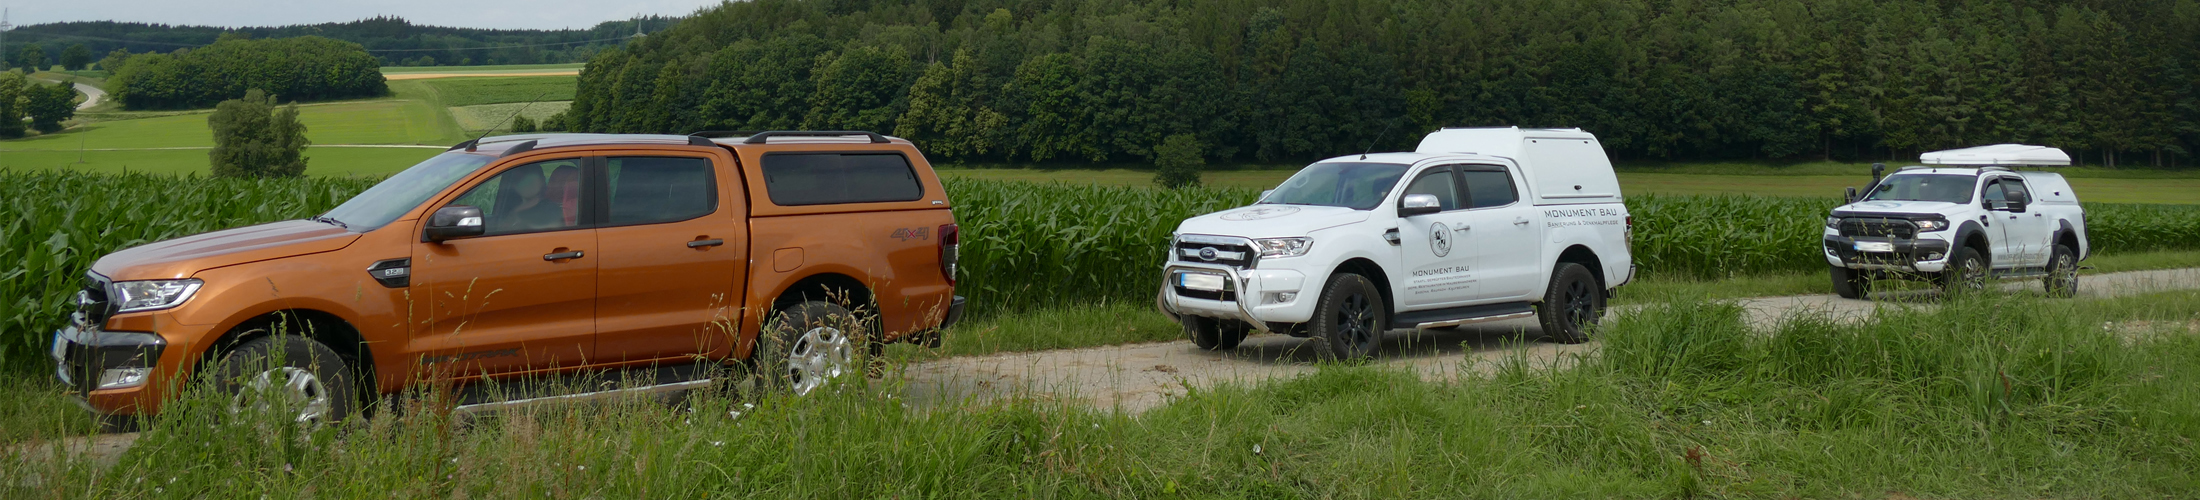 Flotte Off-Road-Products